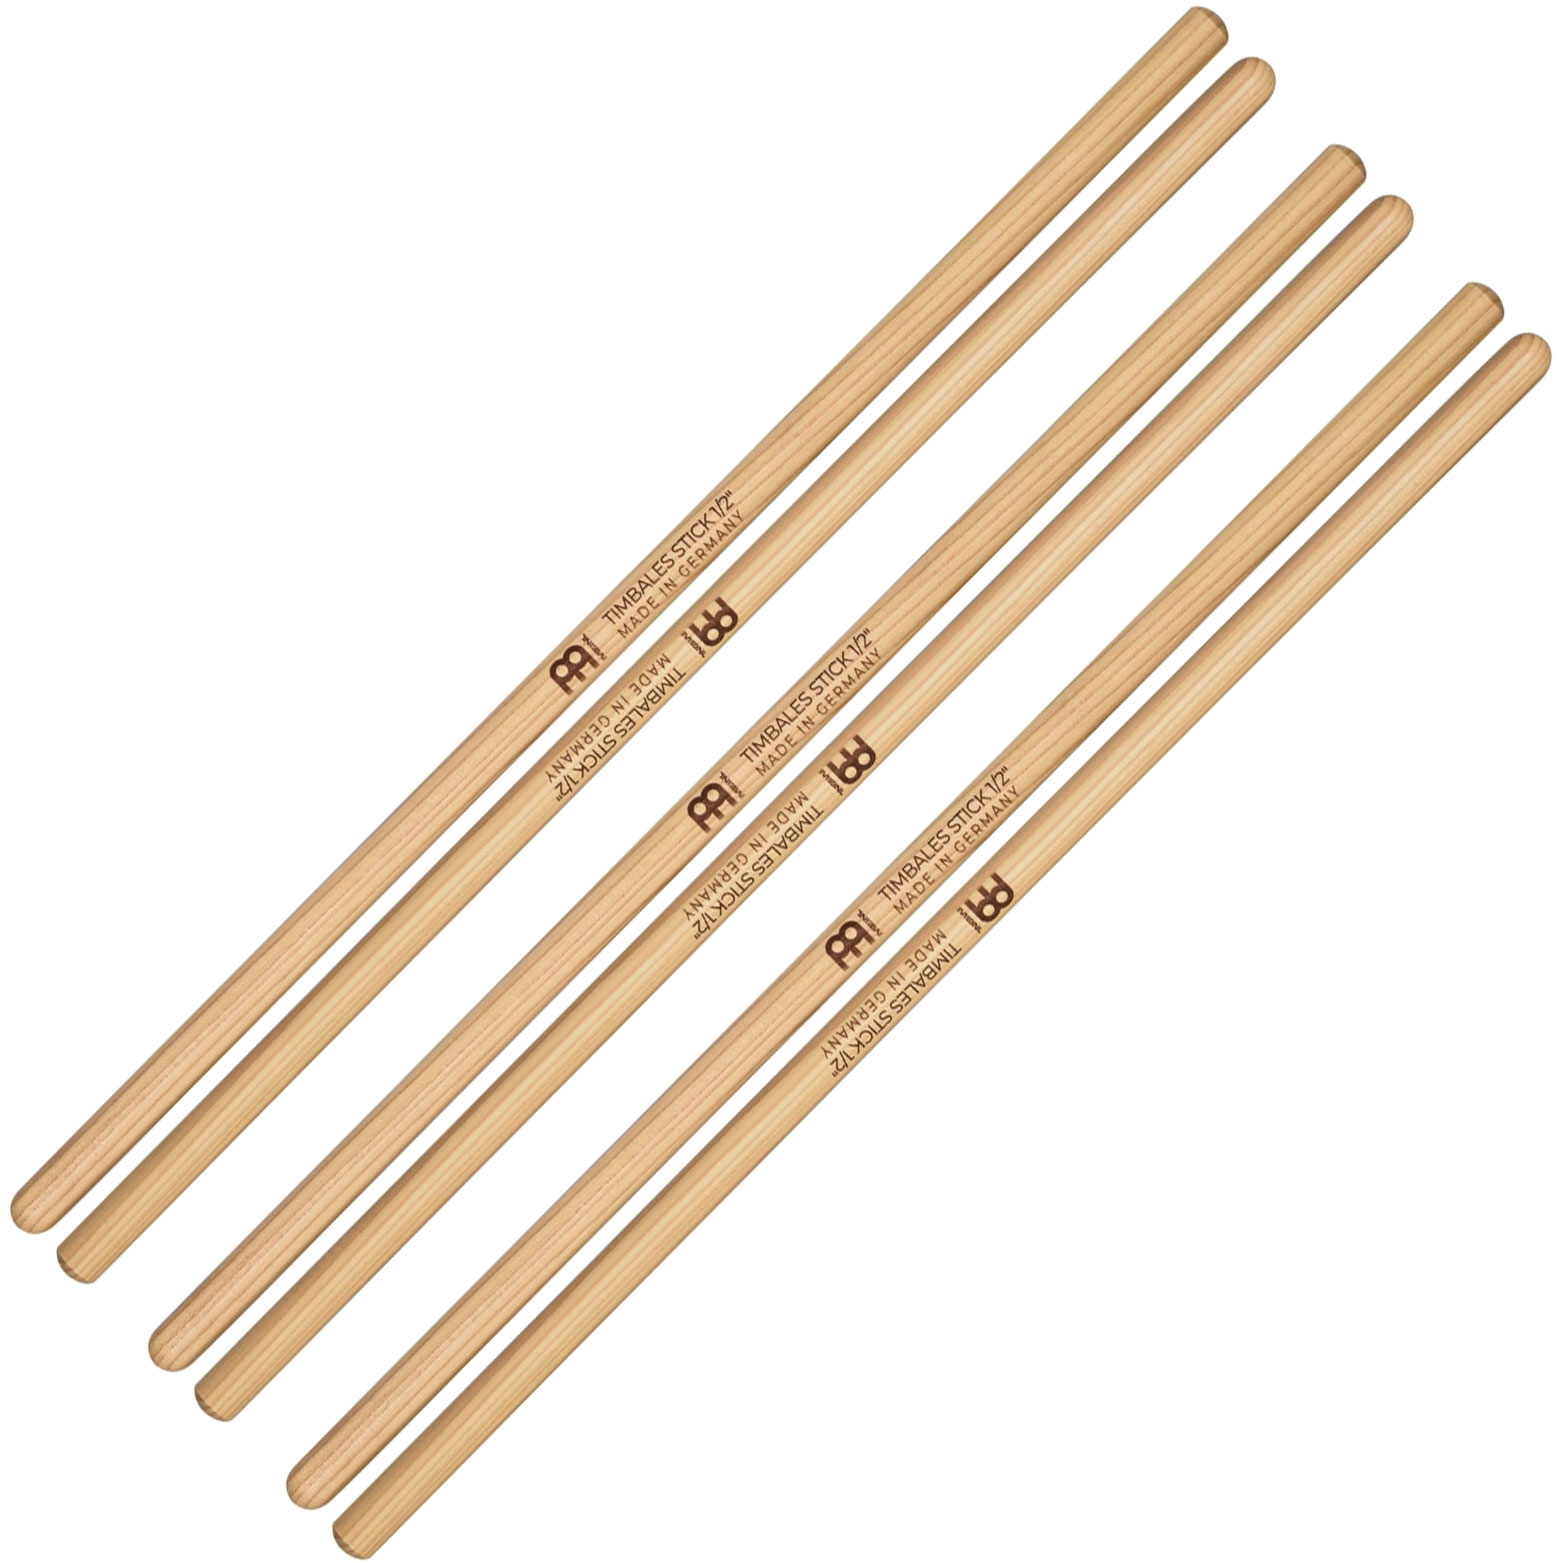 "Meinl 1/2"" Hickory Timbales Sticks (3 Pairs)"